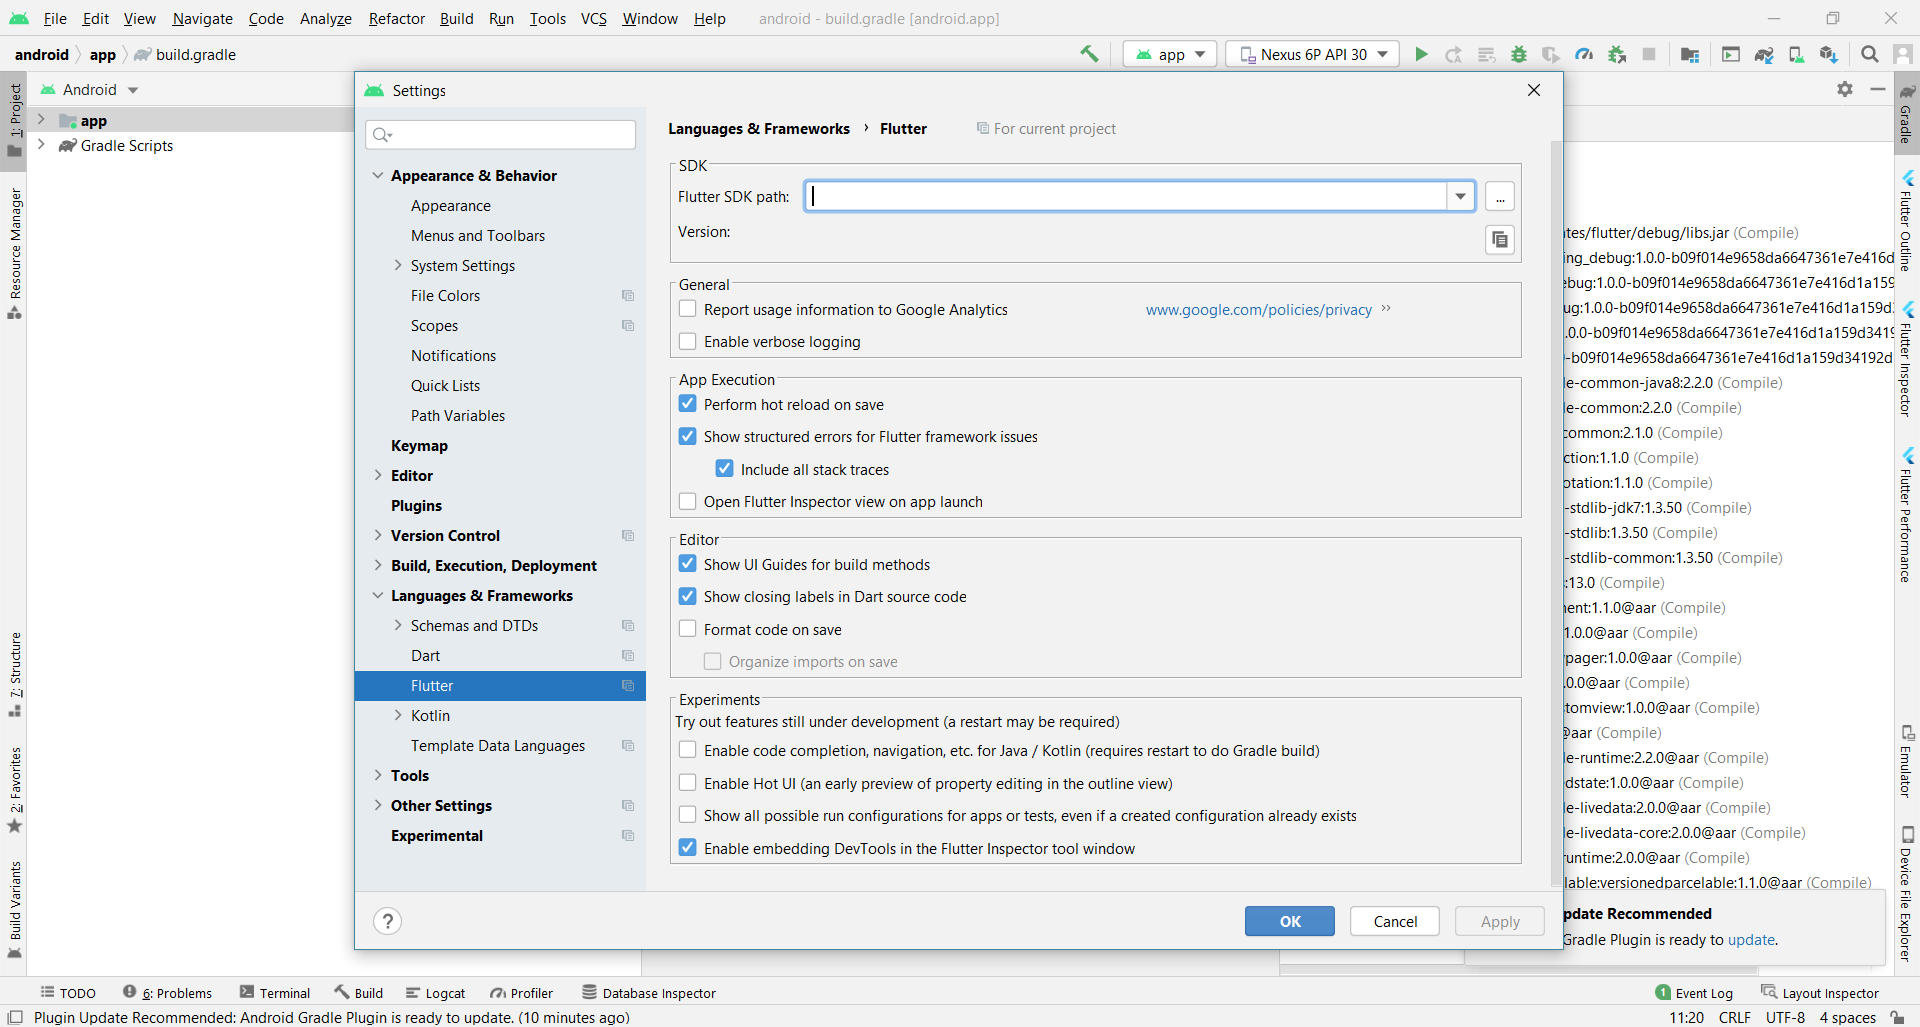 setting the flutter sdk path in Android Studio